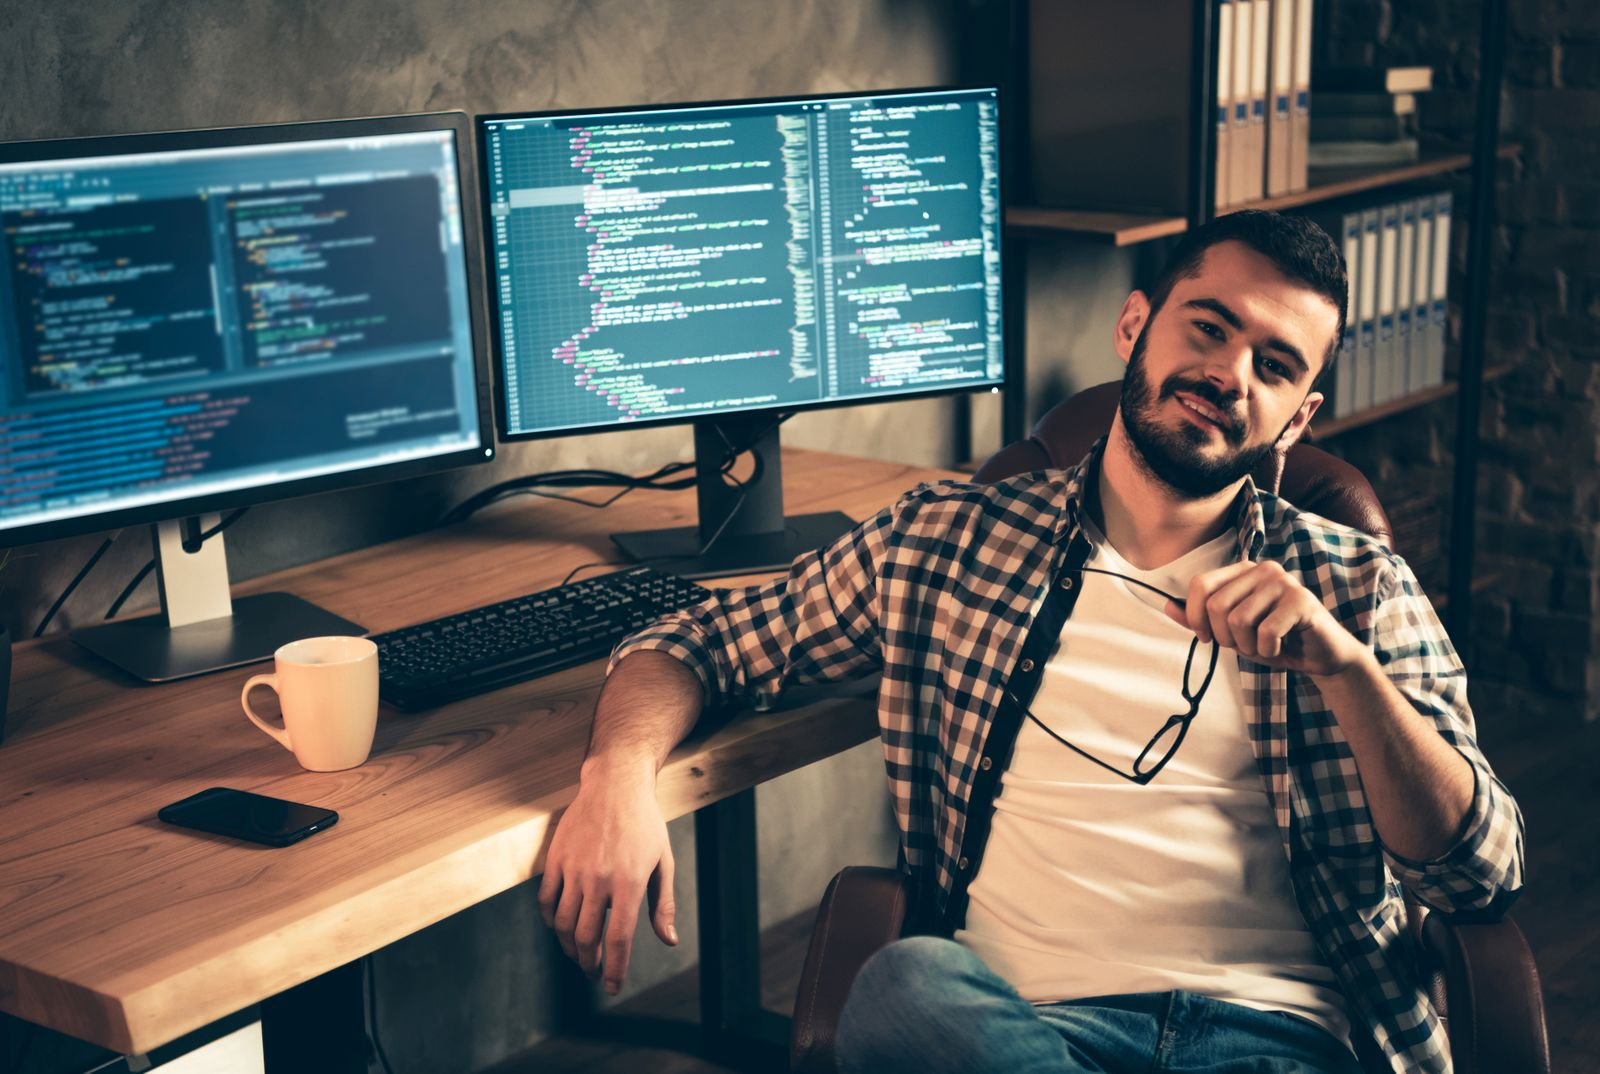 Portrait of his he nice attractive confident content bearded guy wearing checked shirt expert specialist nerd shark boss genius at wooden industrial interior work place station